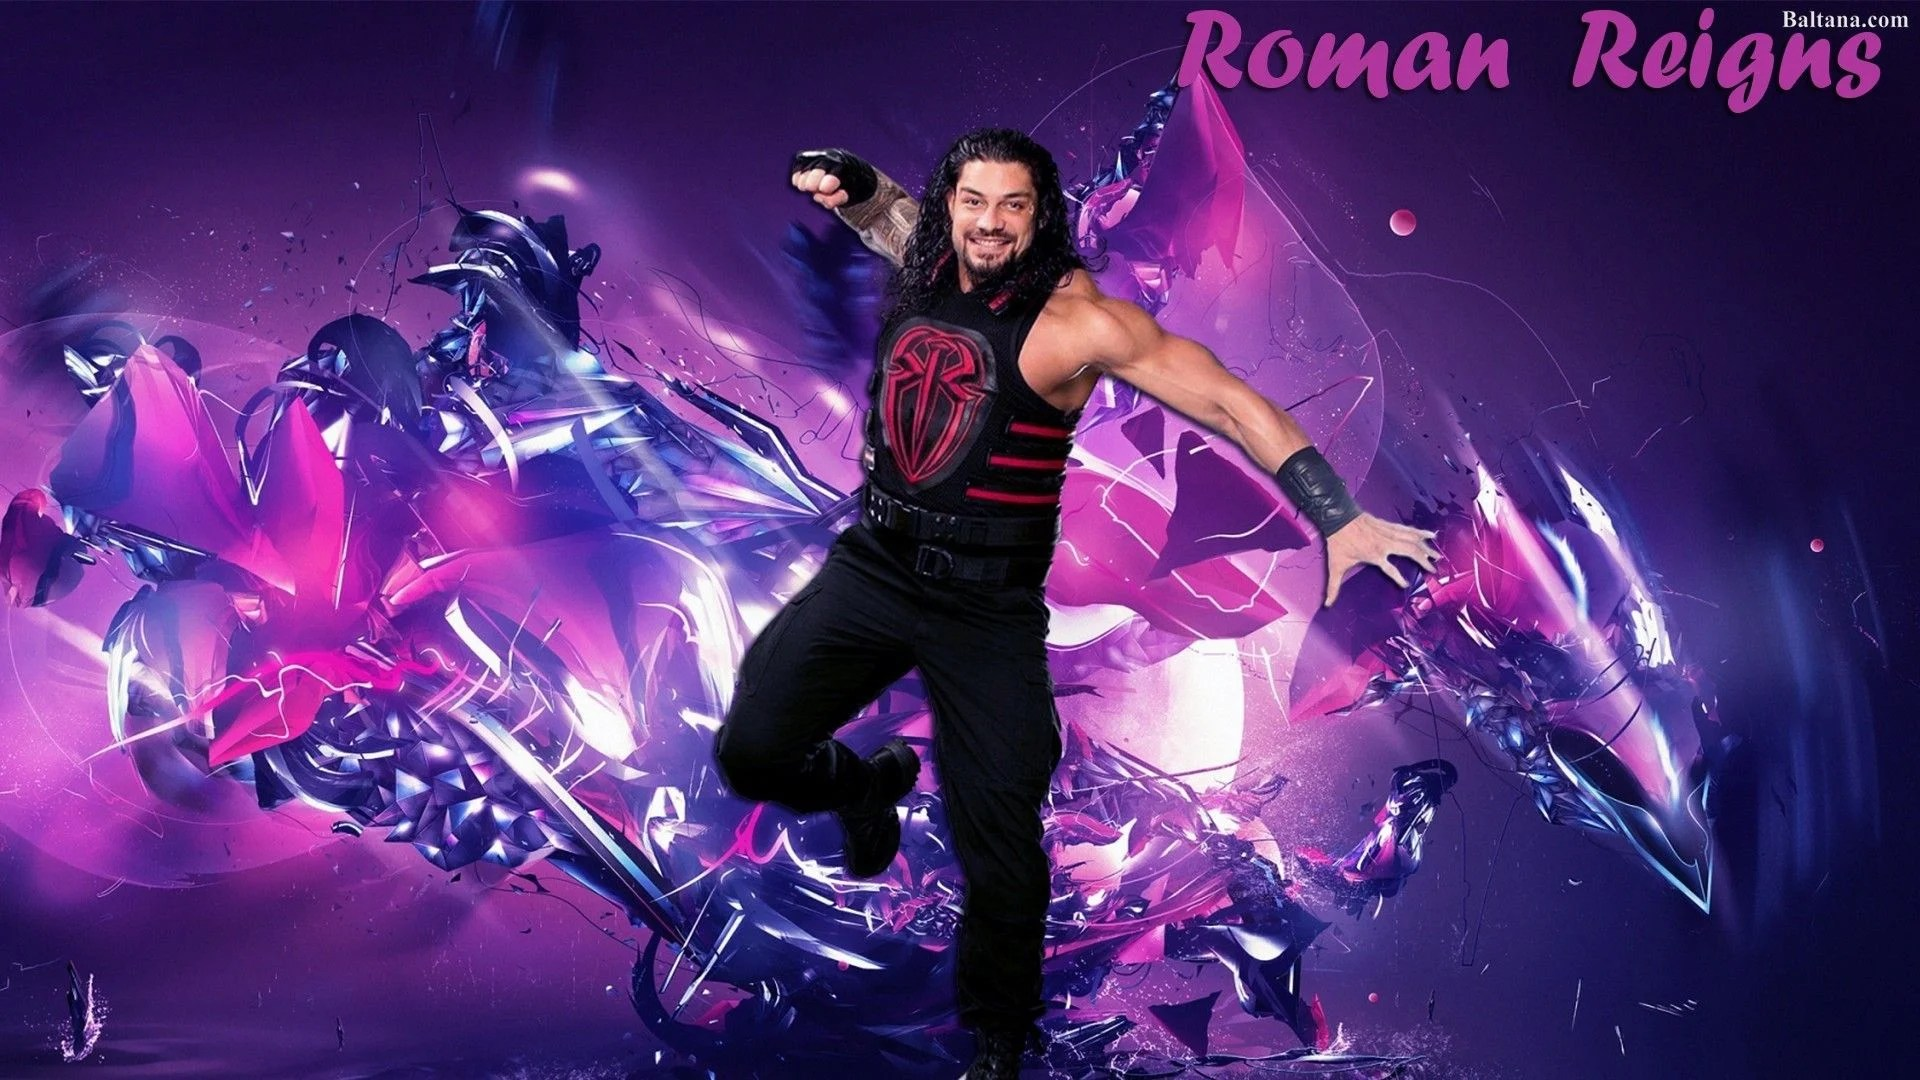 roman reigns wallpapers top free